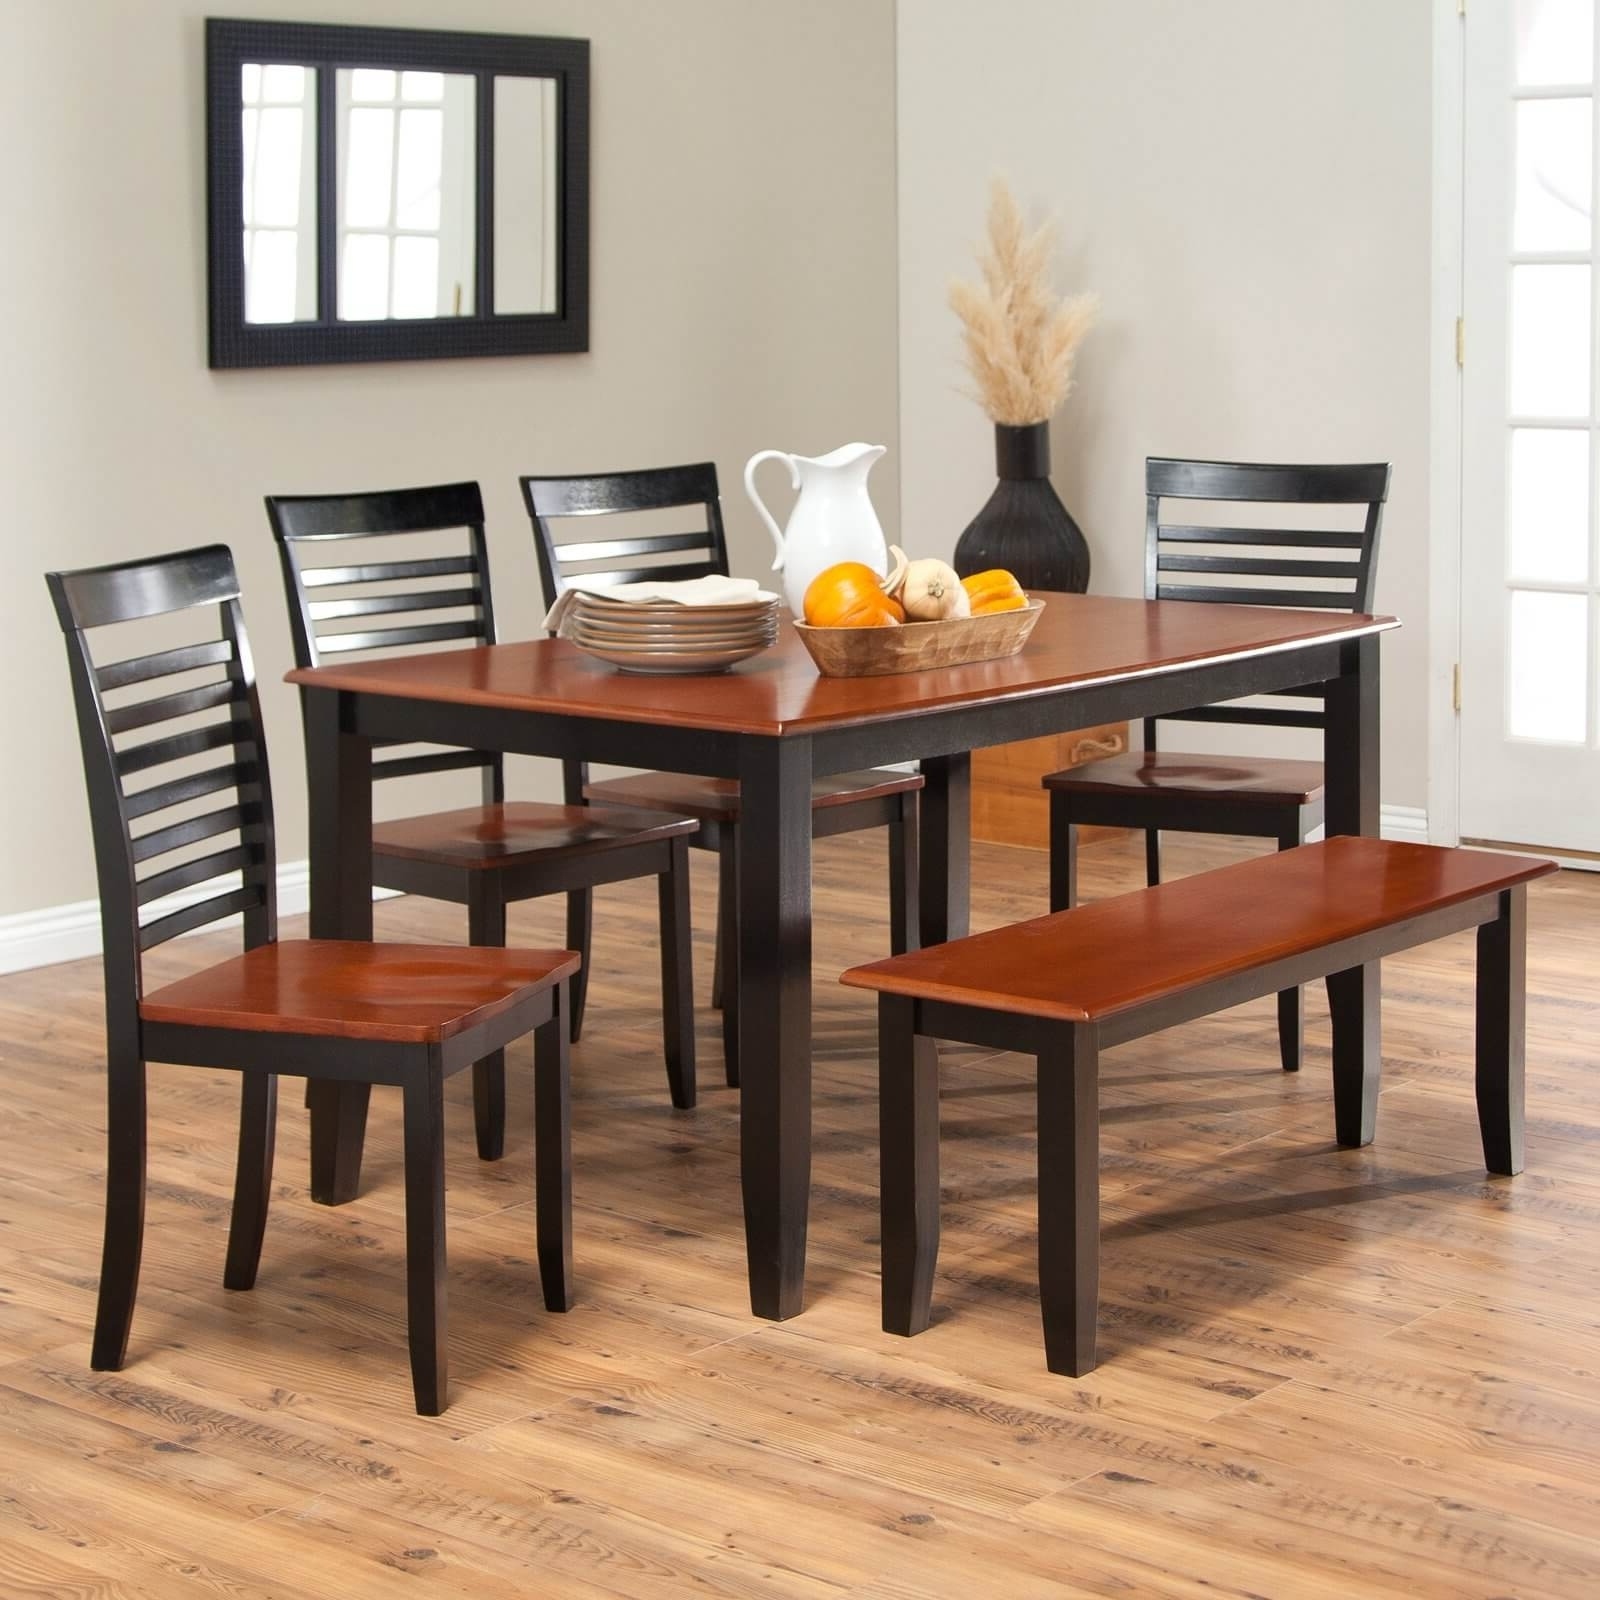 26 Dining Room Sets (Big And Small) With Bench Seating (2018) Regarding Most Current Cheap Dining Tables And Chairs (Gallery 2 of 25)